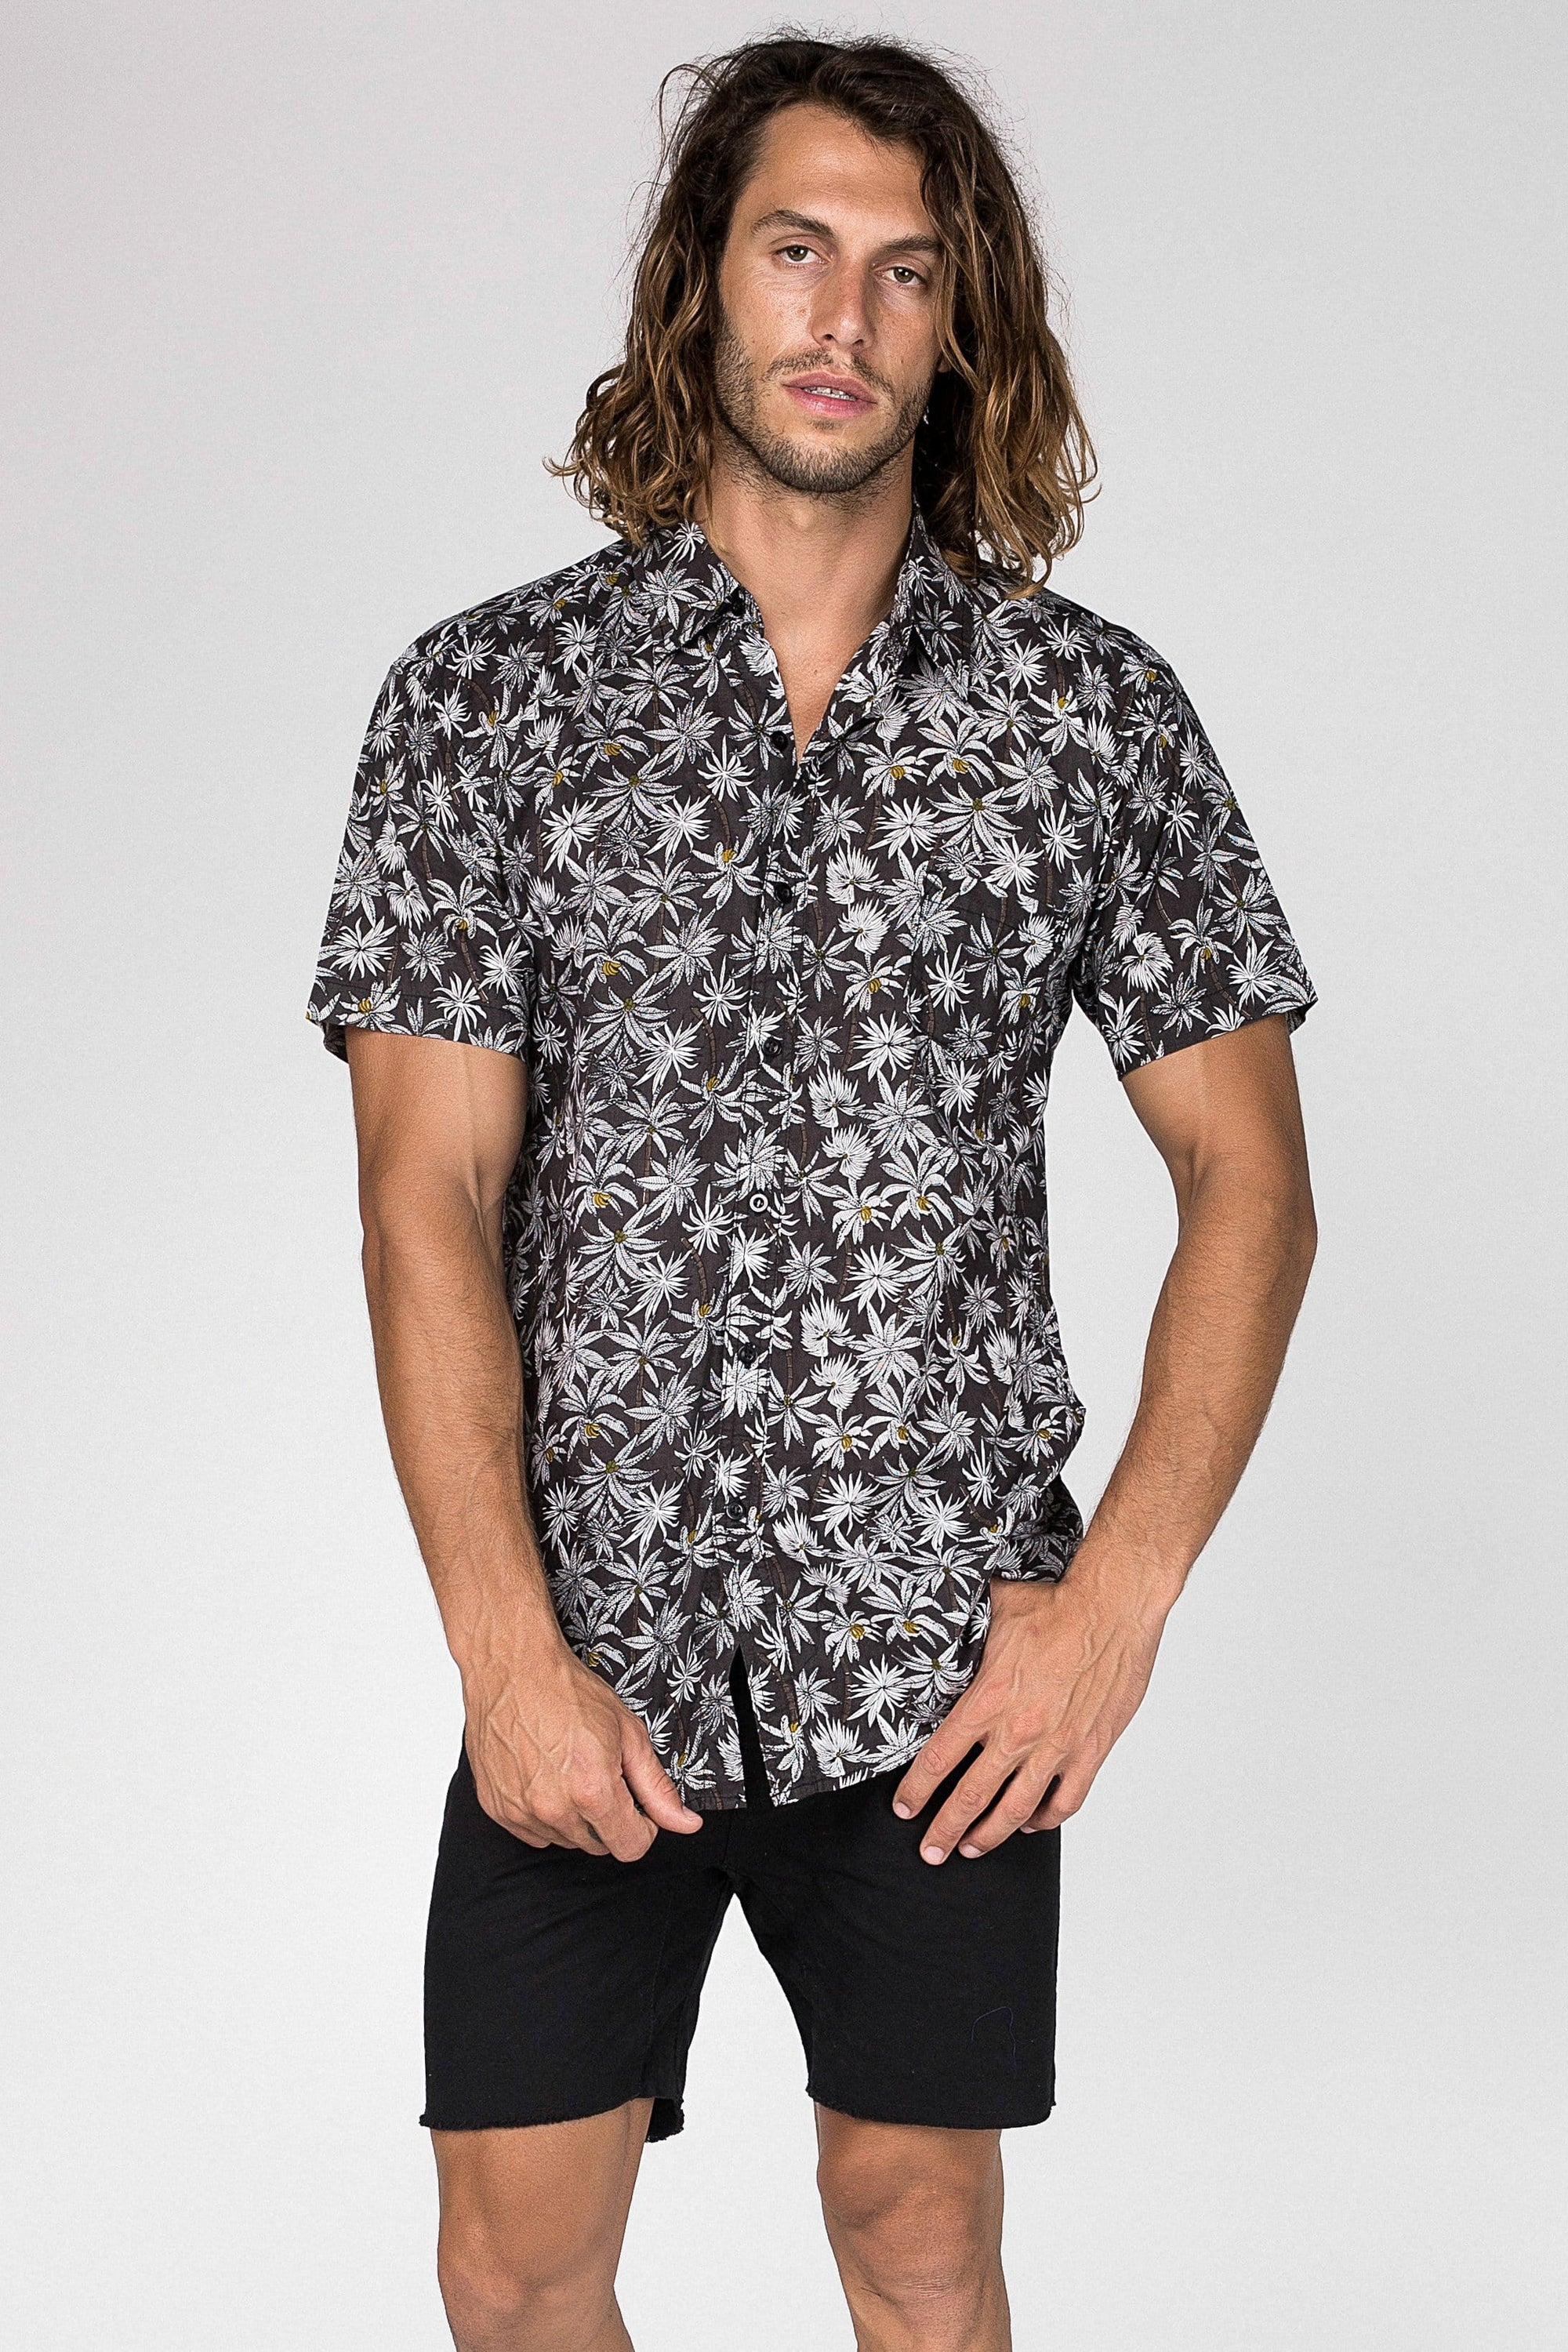 Troponana Shirt - Man Shirt - LOST IN PARADISE